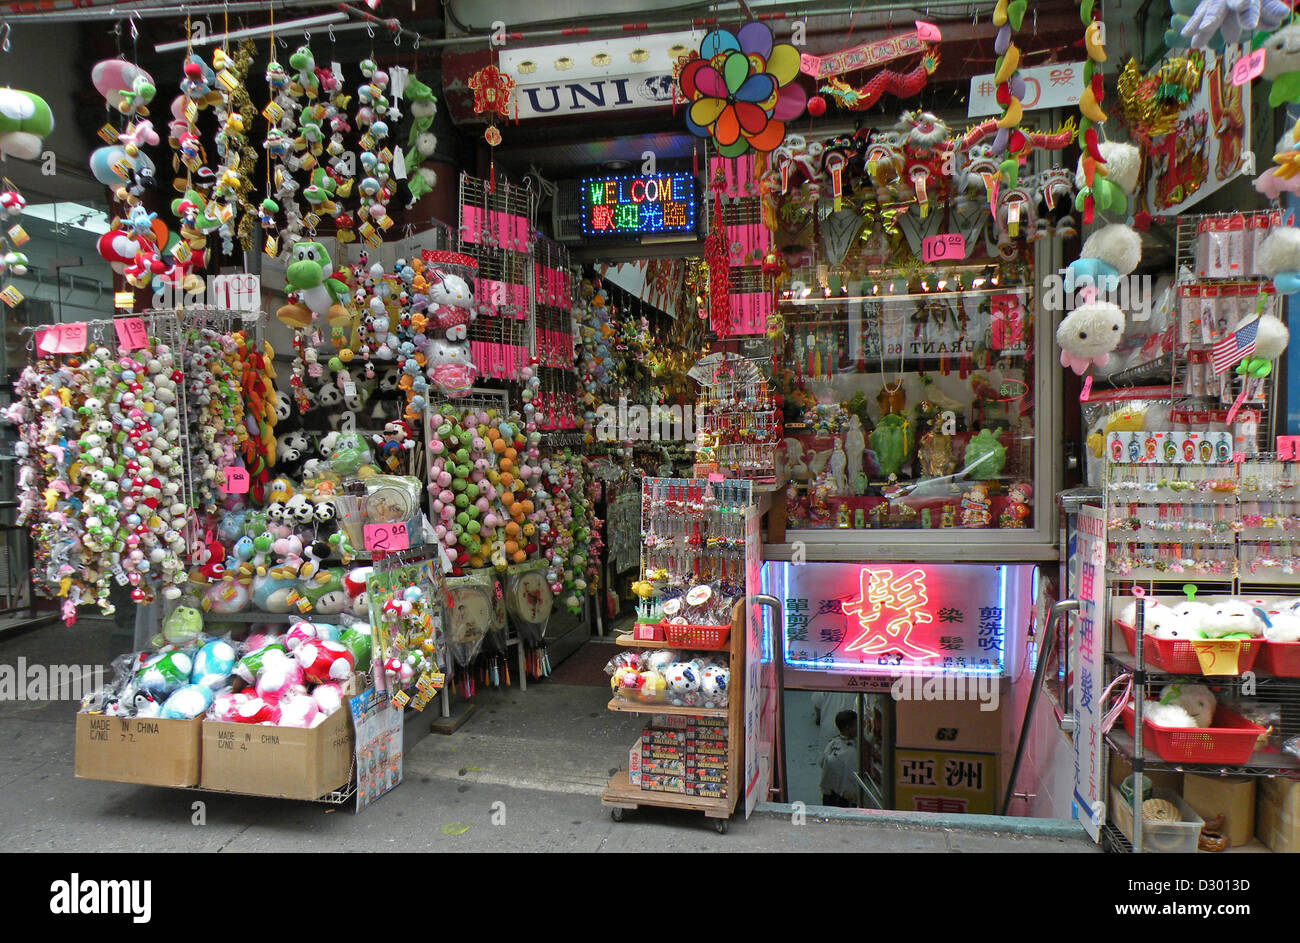 A tourist gift shop, Chinatown, New York City with many souvenir items for sale. Stock Photo